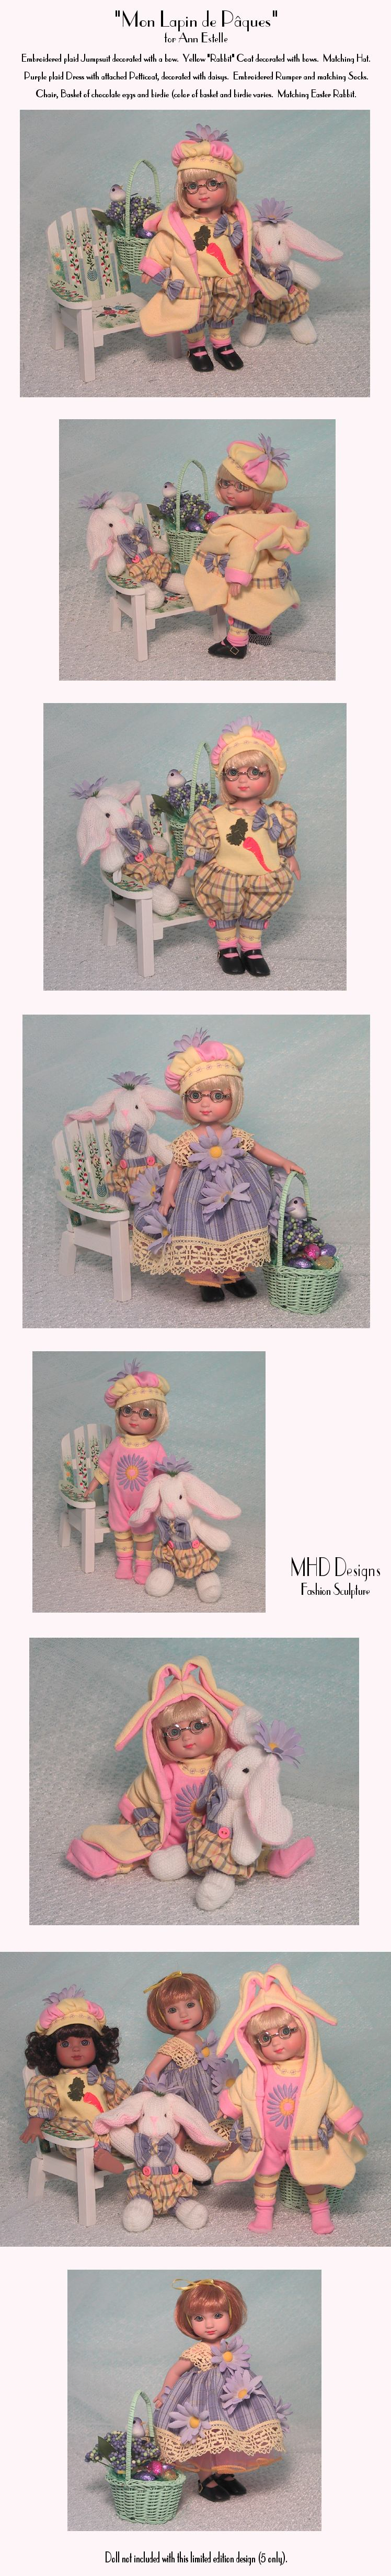 MHD Designs - My Easter Bunny - for Ann Estelle